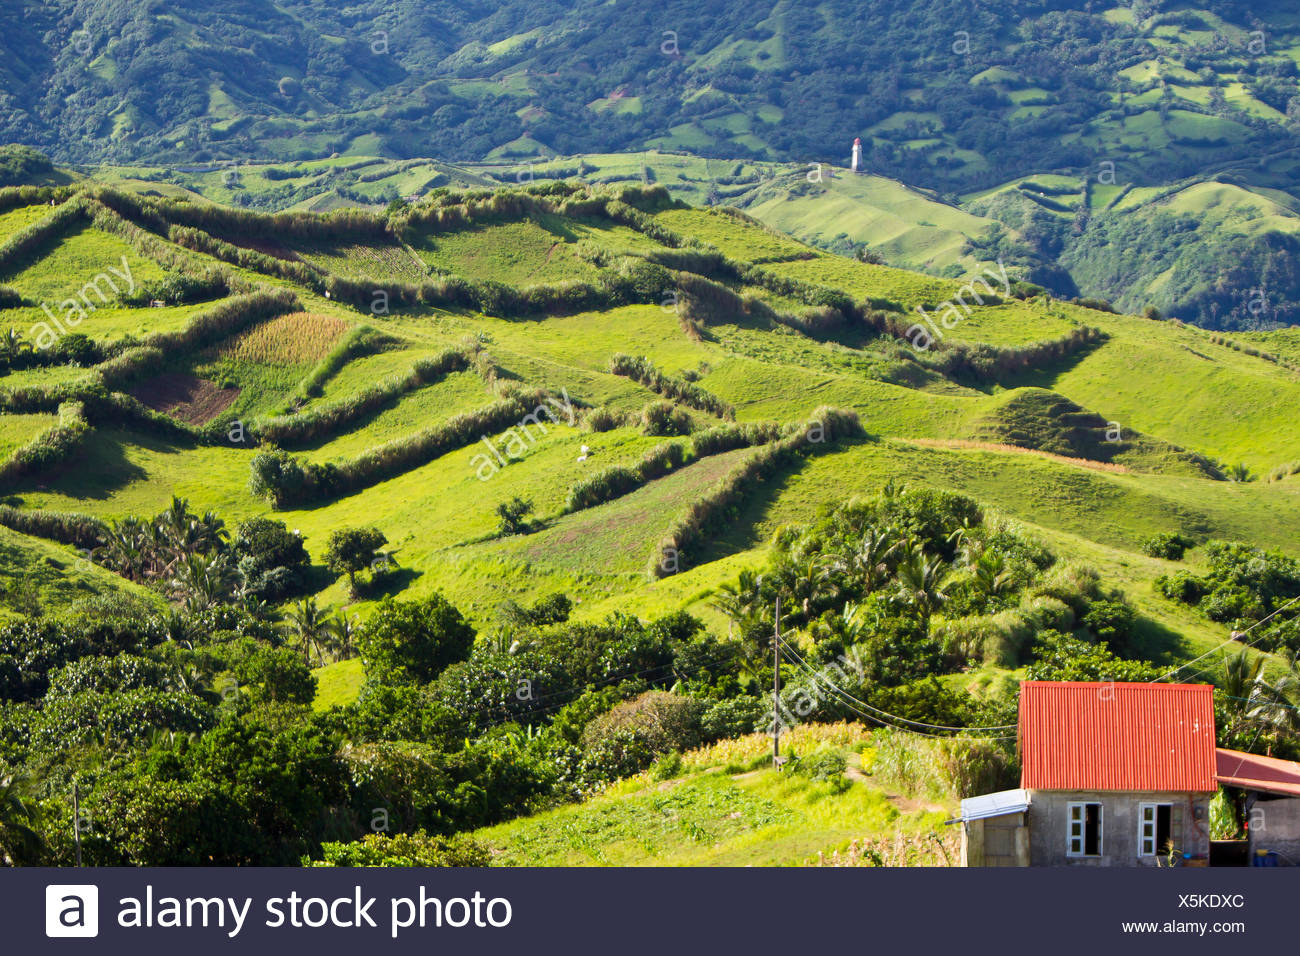 Hedge rows separate farmers' fields in a hilly landscape. - Stock Image